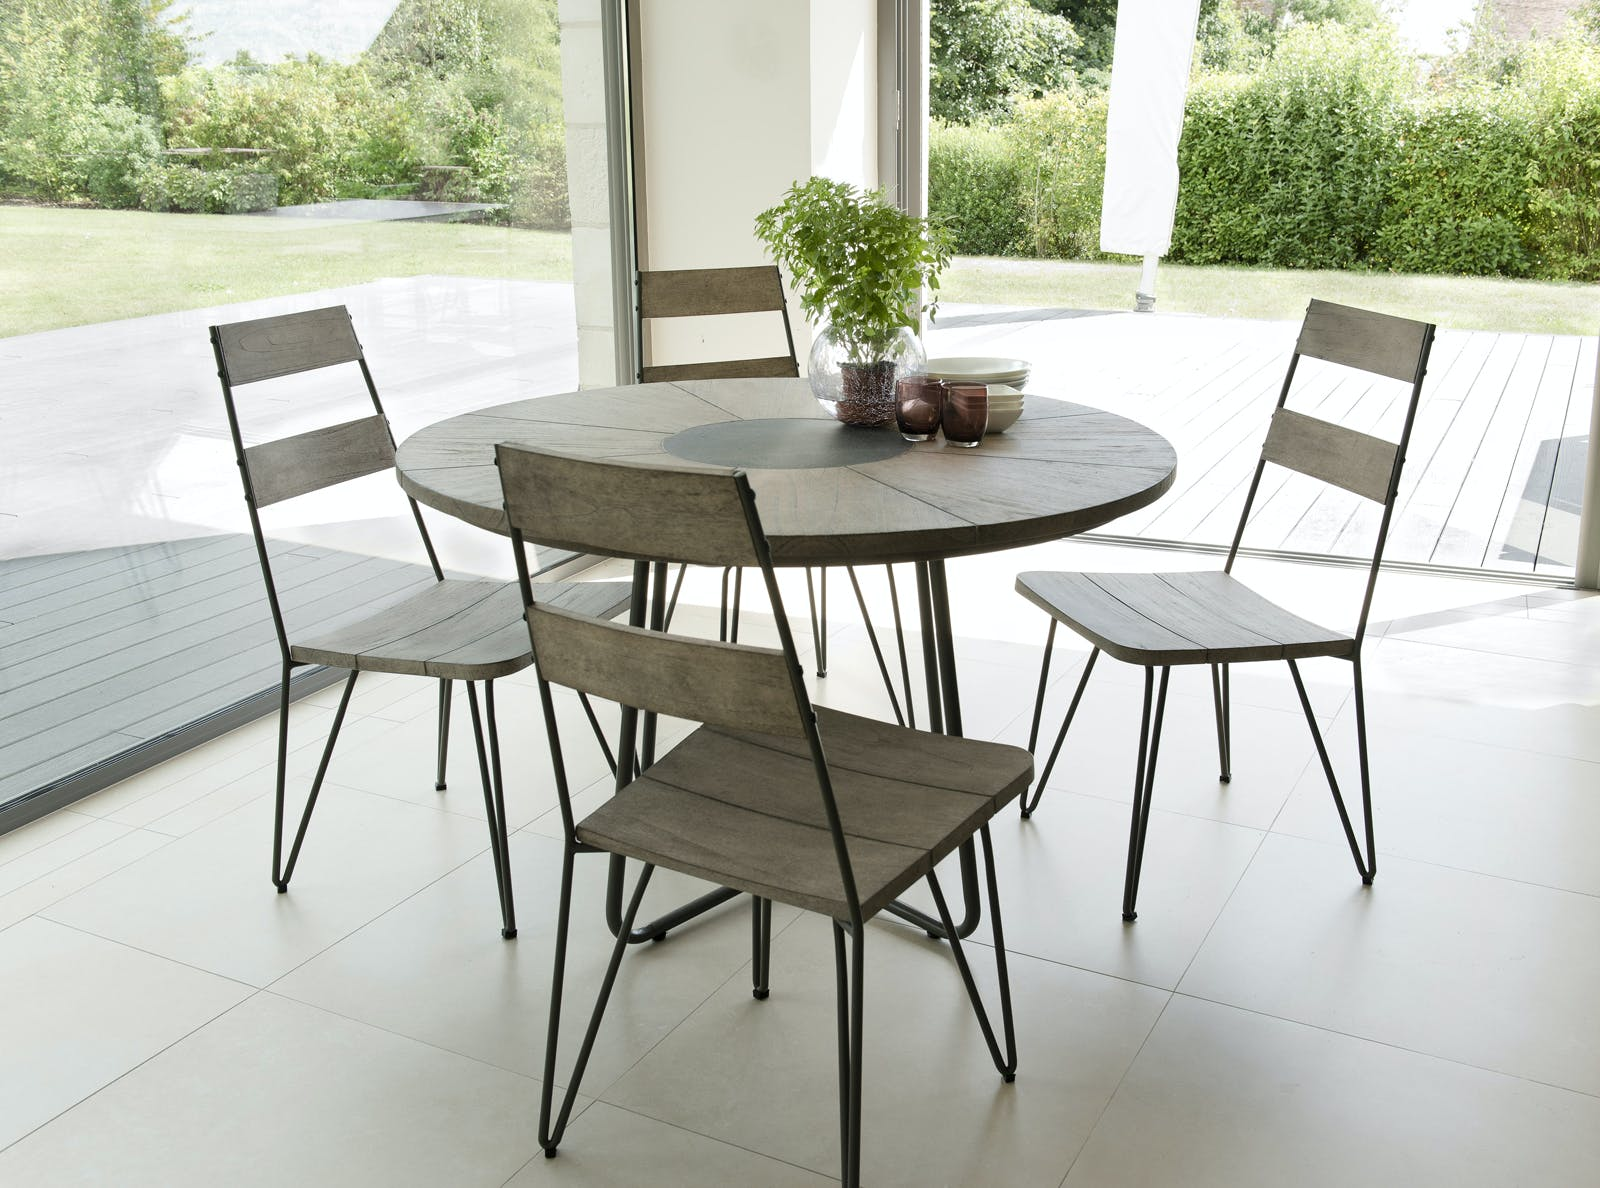 Salon de Jardin Teck Table D120 + 4 chaises DETROIT ref. 30020826